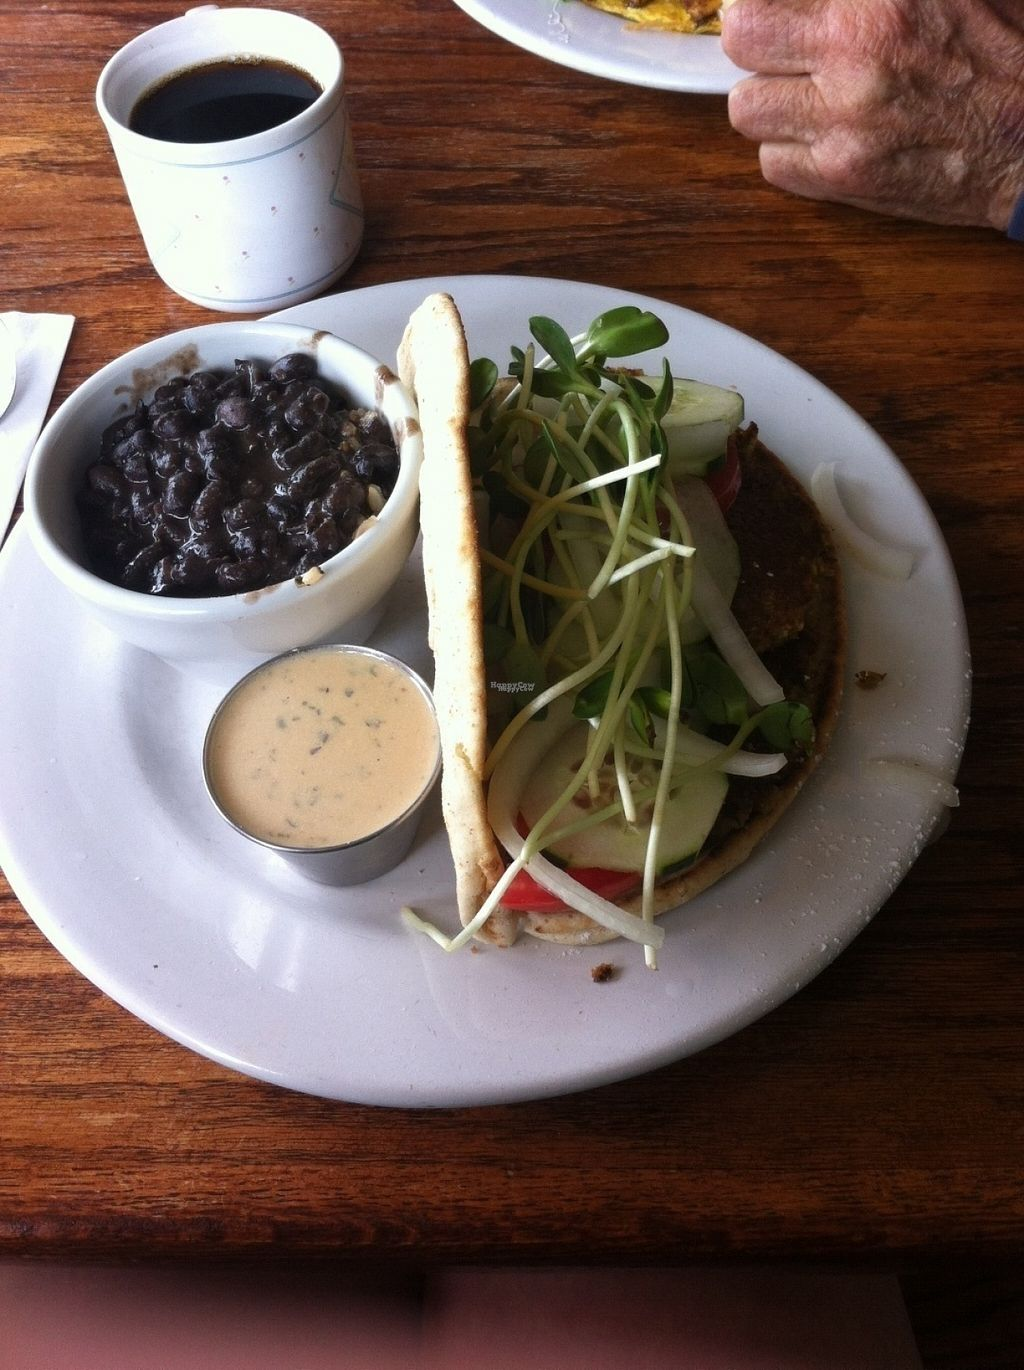 """Photo of Wildflower Cafe and Bakery  by <a href=""""/members/profile/BananaAddict"""">BananaAddict</a> <br/>Falafel with a cup of beans and rice ($3 extra) <br/> August 17, 2016  - <a href='/contact/abuse/image/1480/169368'>Report</a>"""